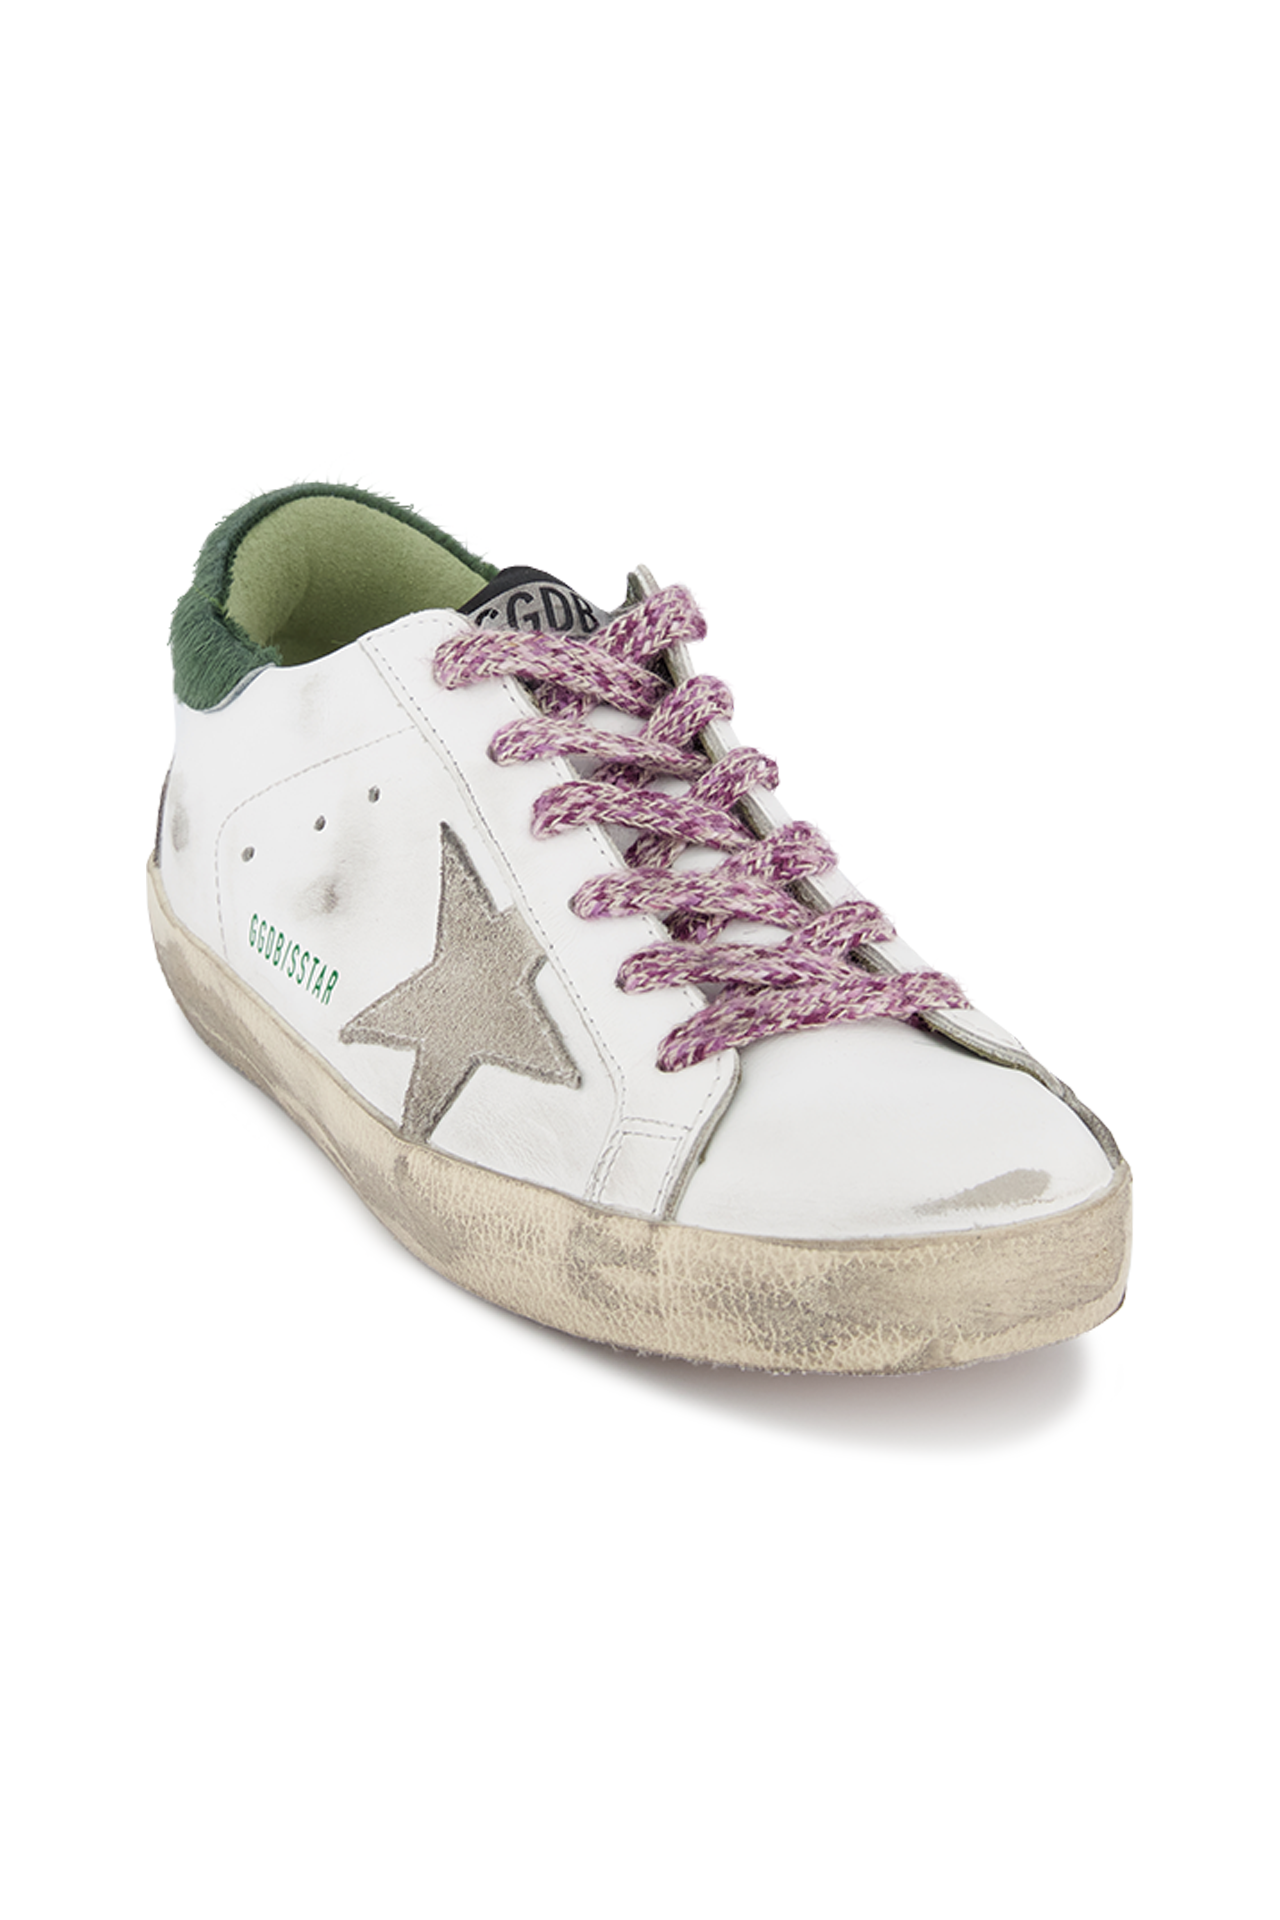 Front angled view image of Golden Goose Women's Superstar Sneaker White/Green